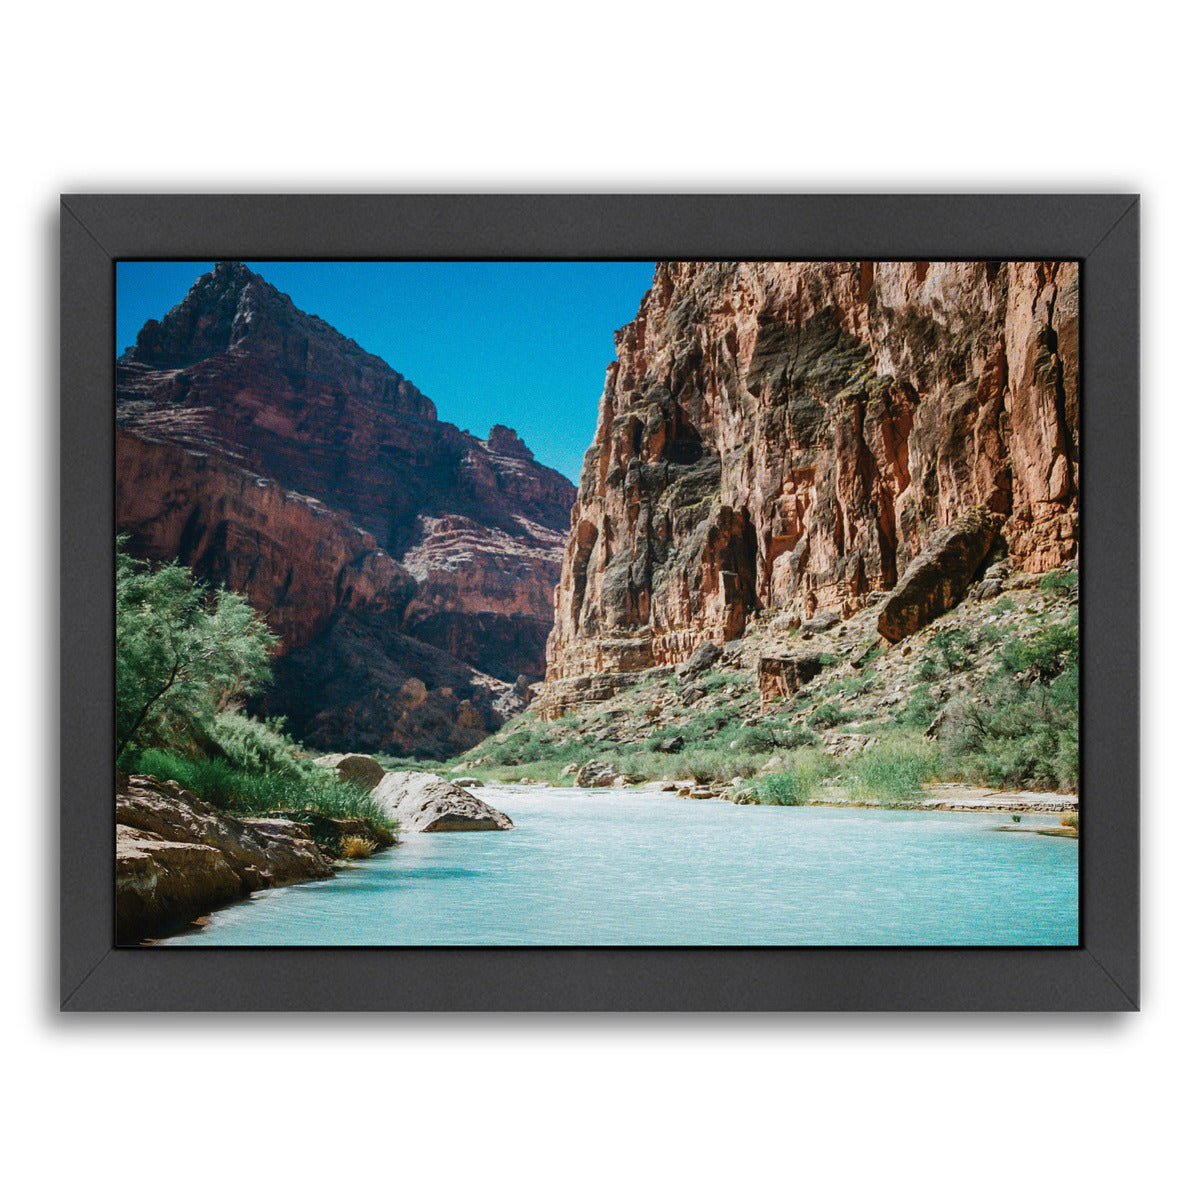 Little Colorado River By Natalie Allen - Black Framed Print - Wall Art - Americanflat